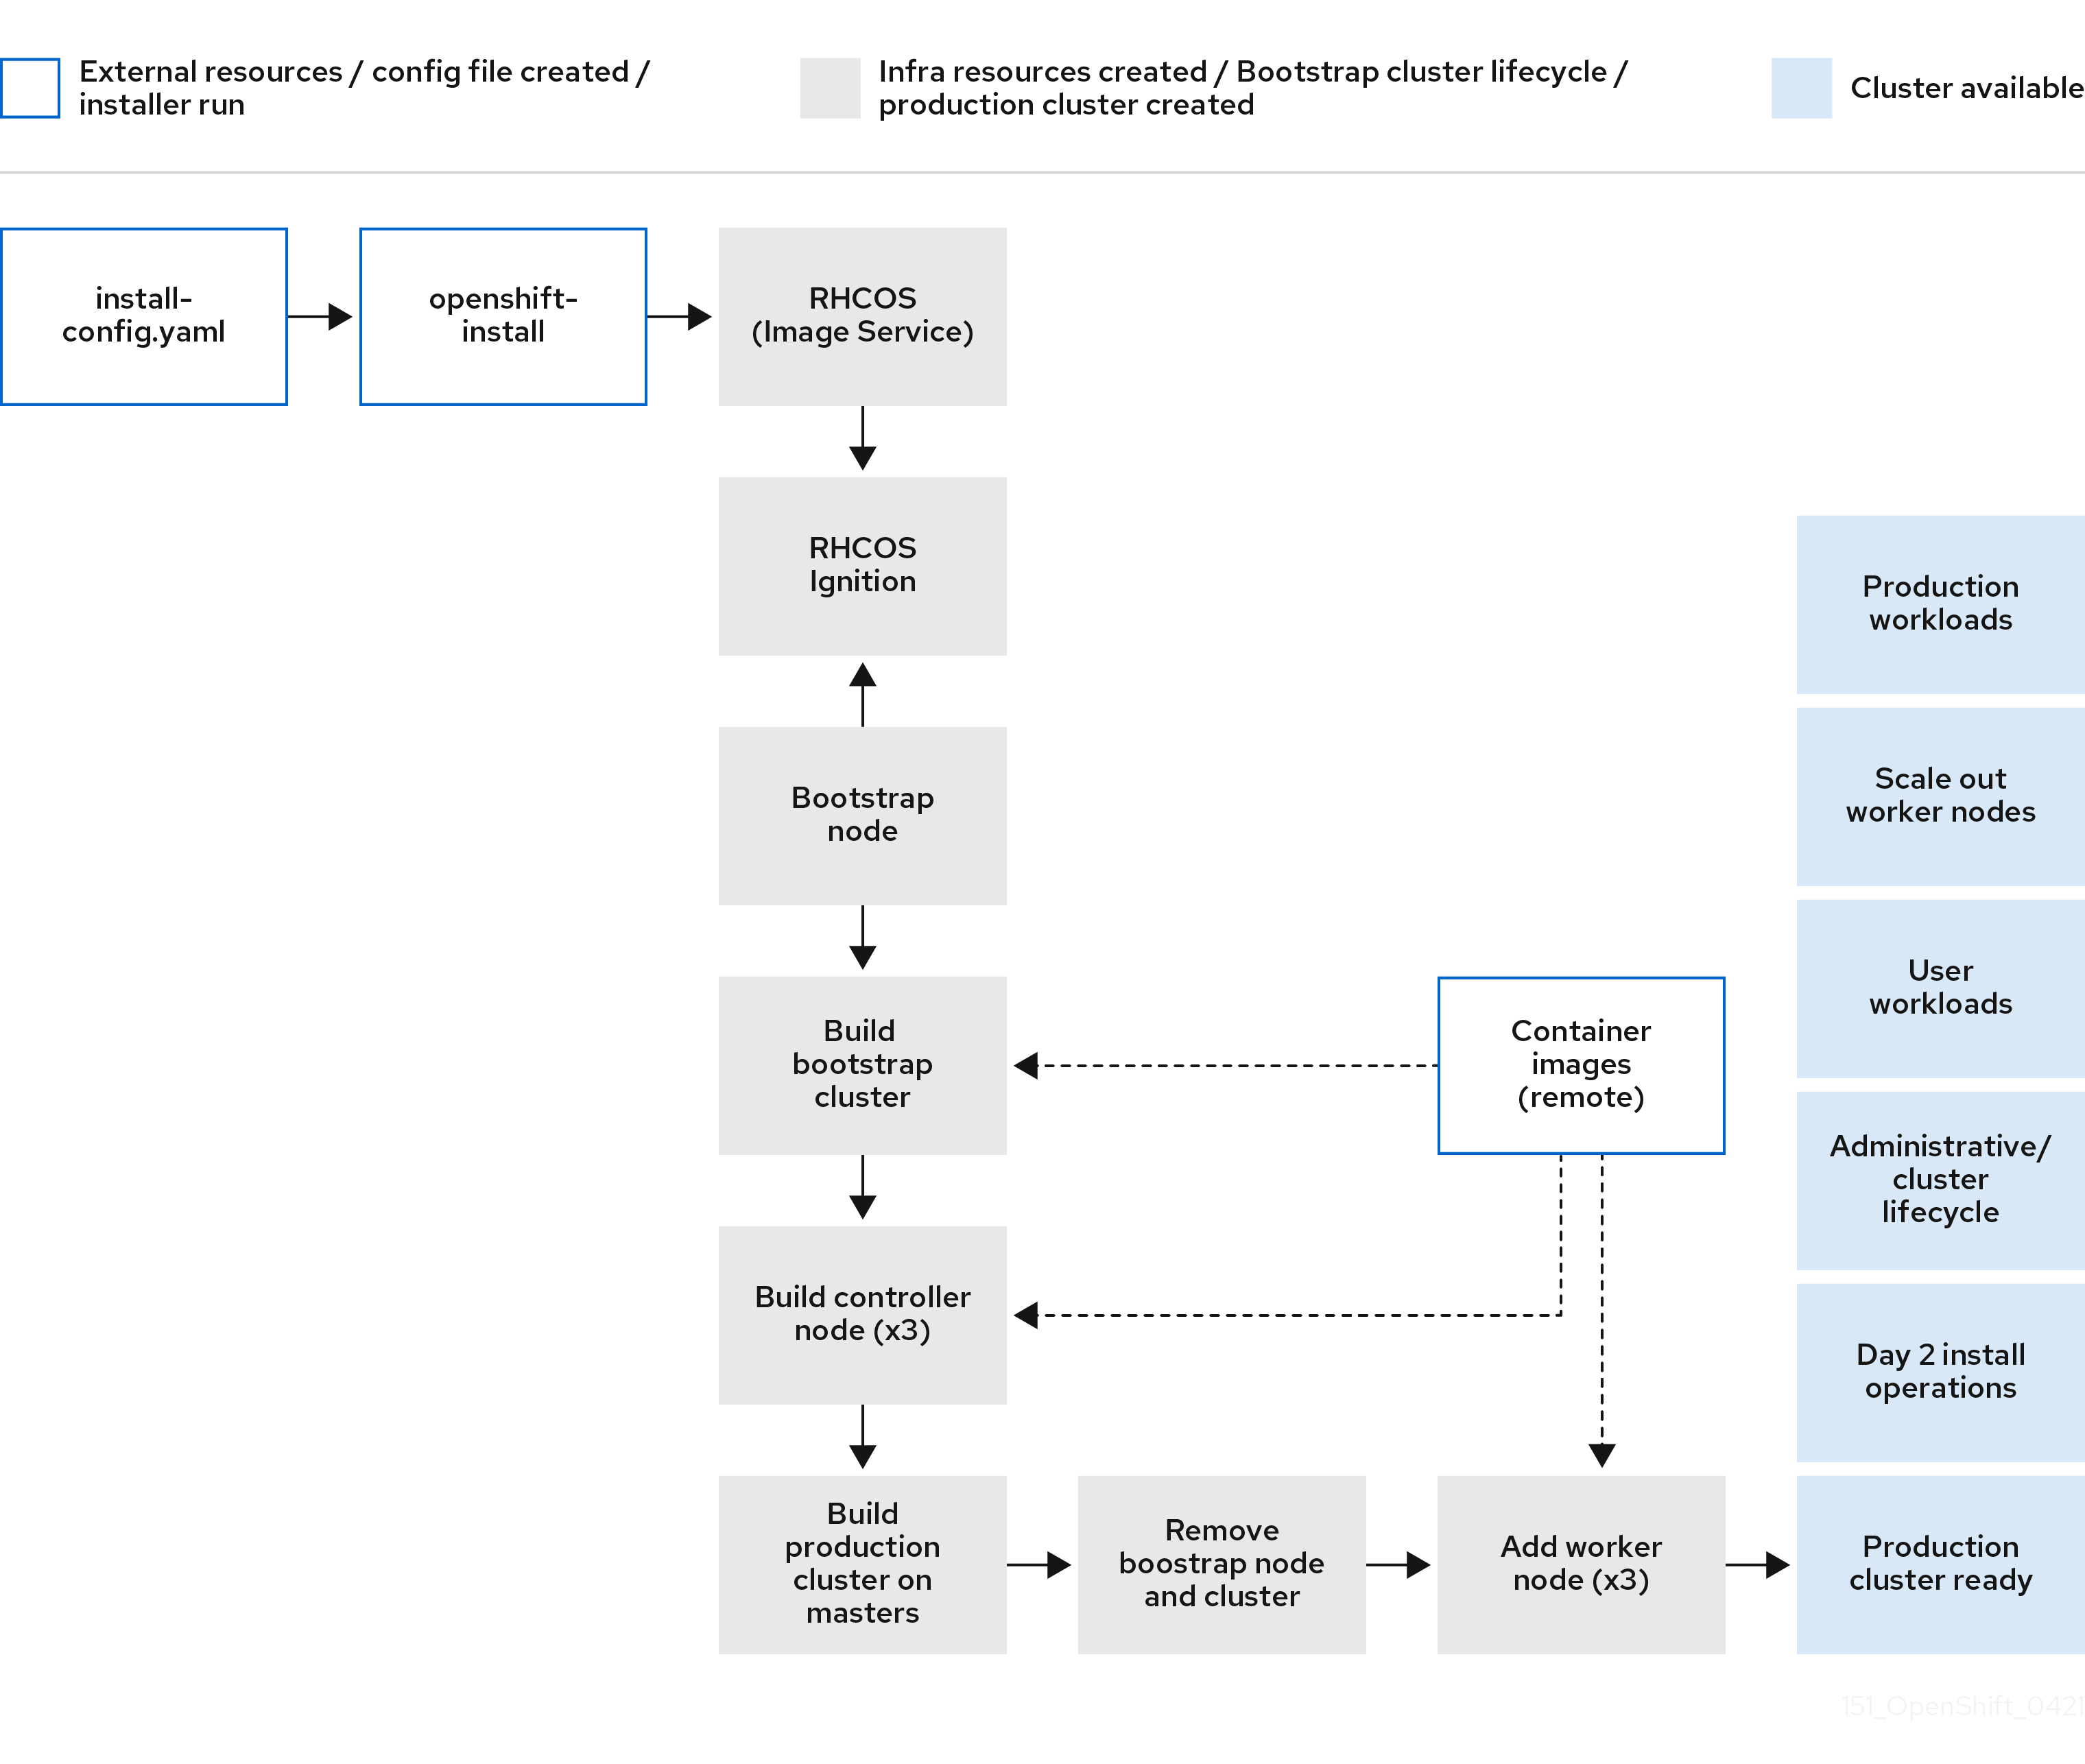 A diagram that shows the OpenShift full stack automation installation process from install-config.yaml file configuration to production deployment.